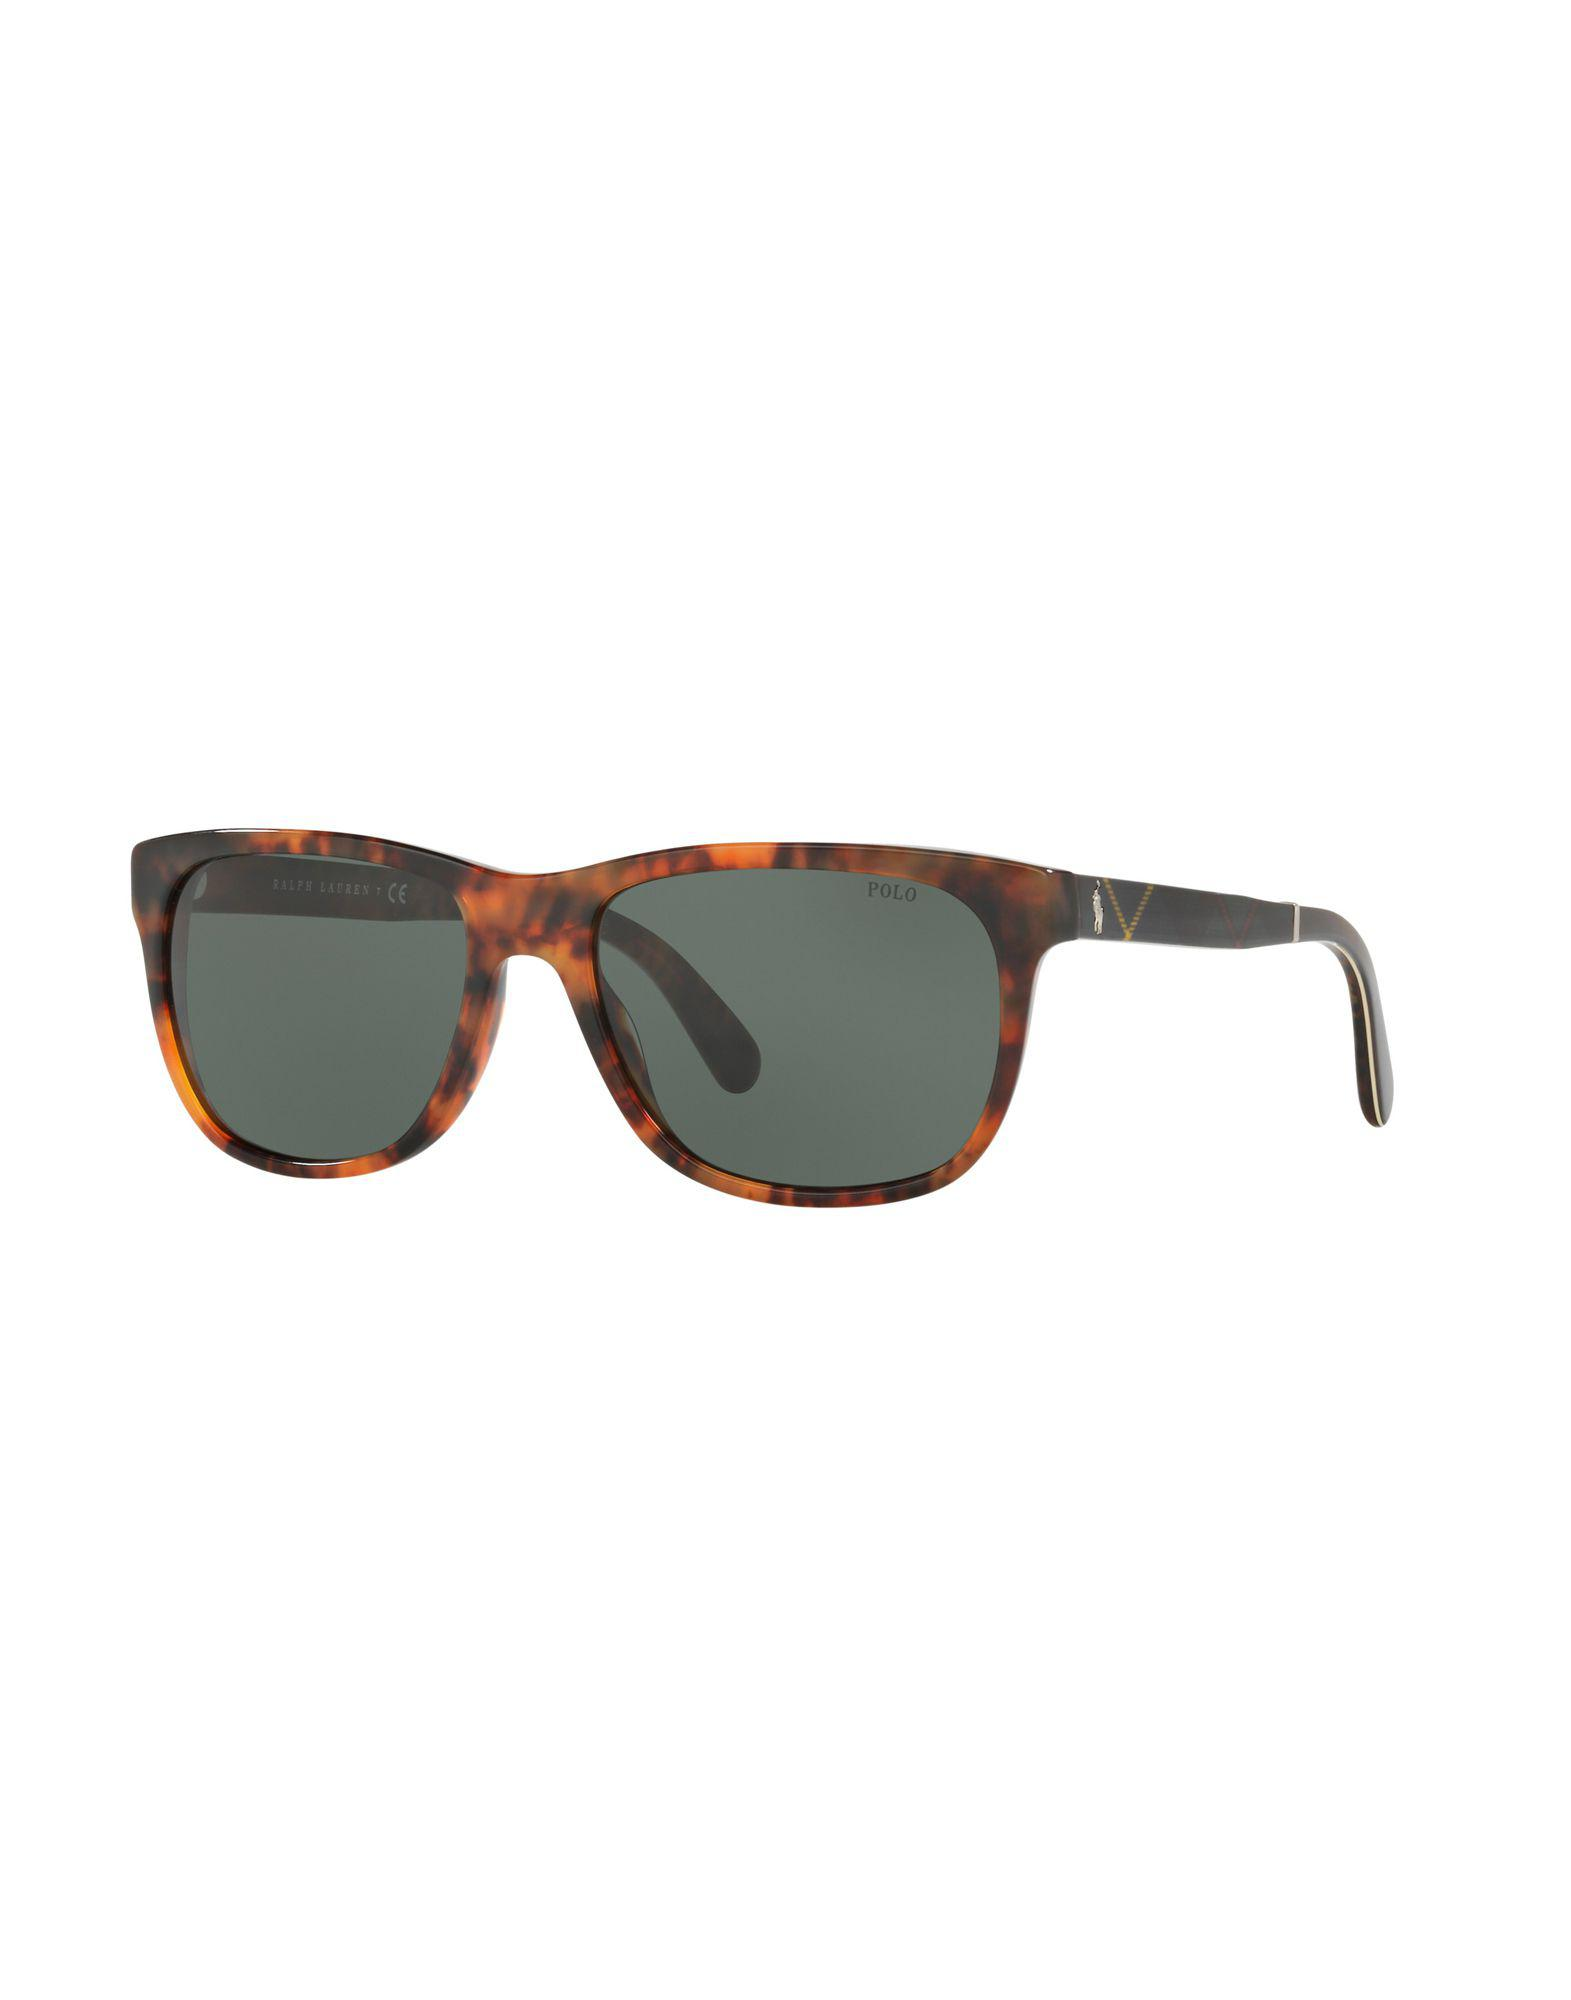 2494cfaf11f Polo Ralph Lauren Sunglasses in Gray - Lyst